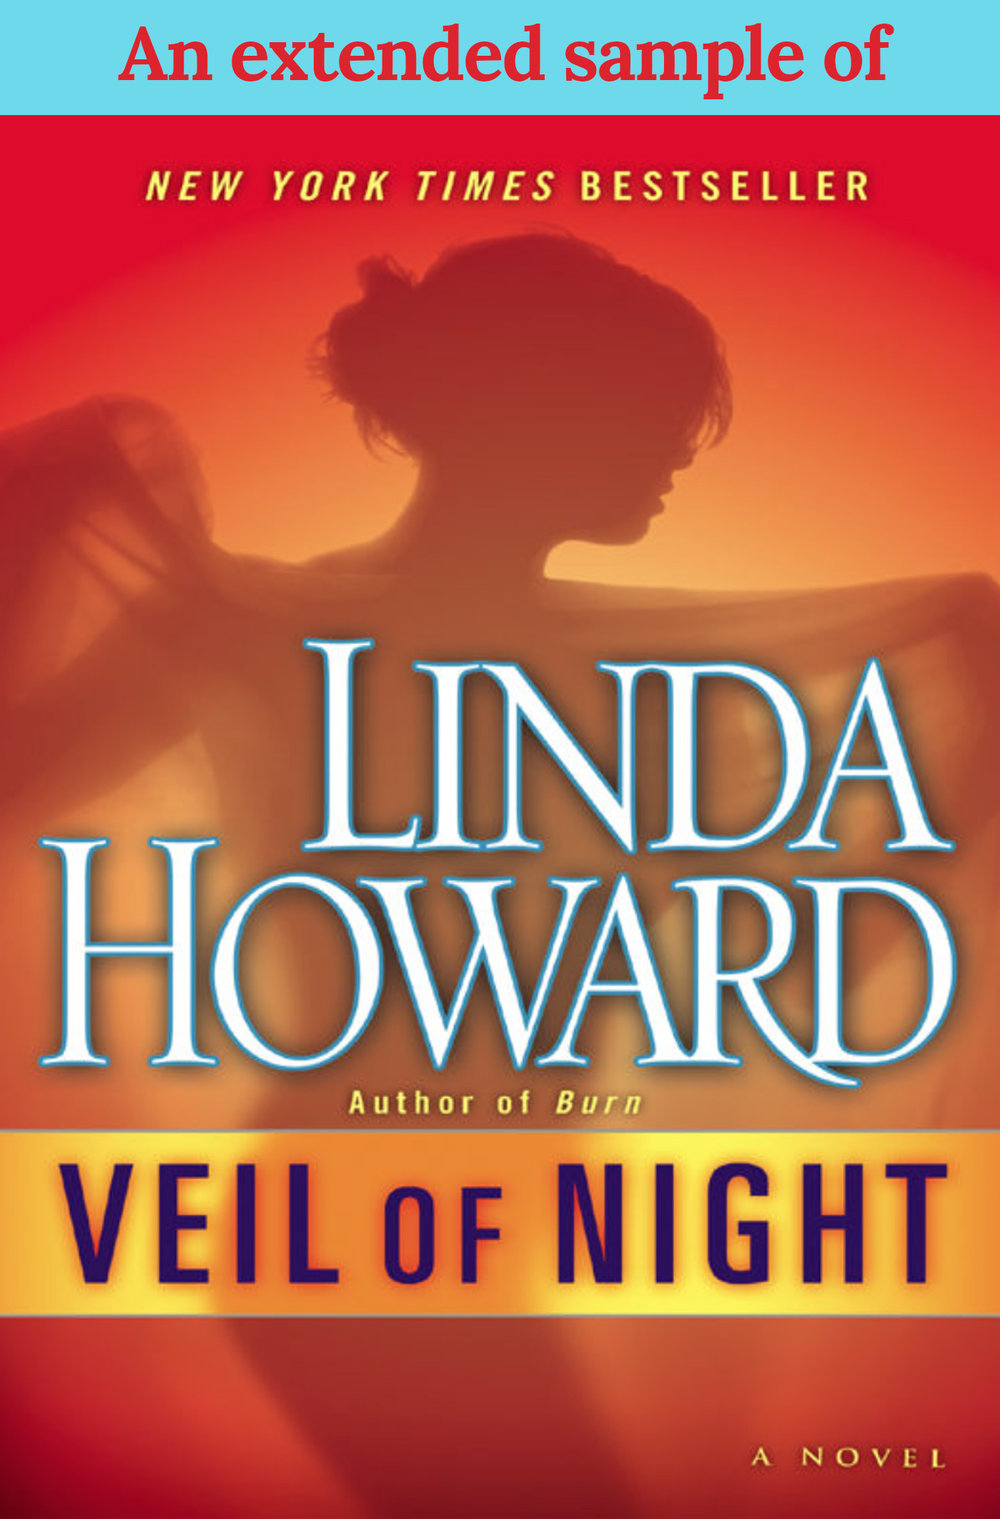 As the heat intensifies between a murdered bridezilla's wedding planner and the cop investigating the case, a killer moves dangerously close. - The